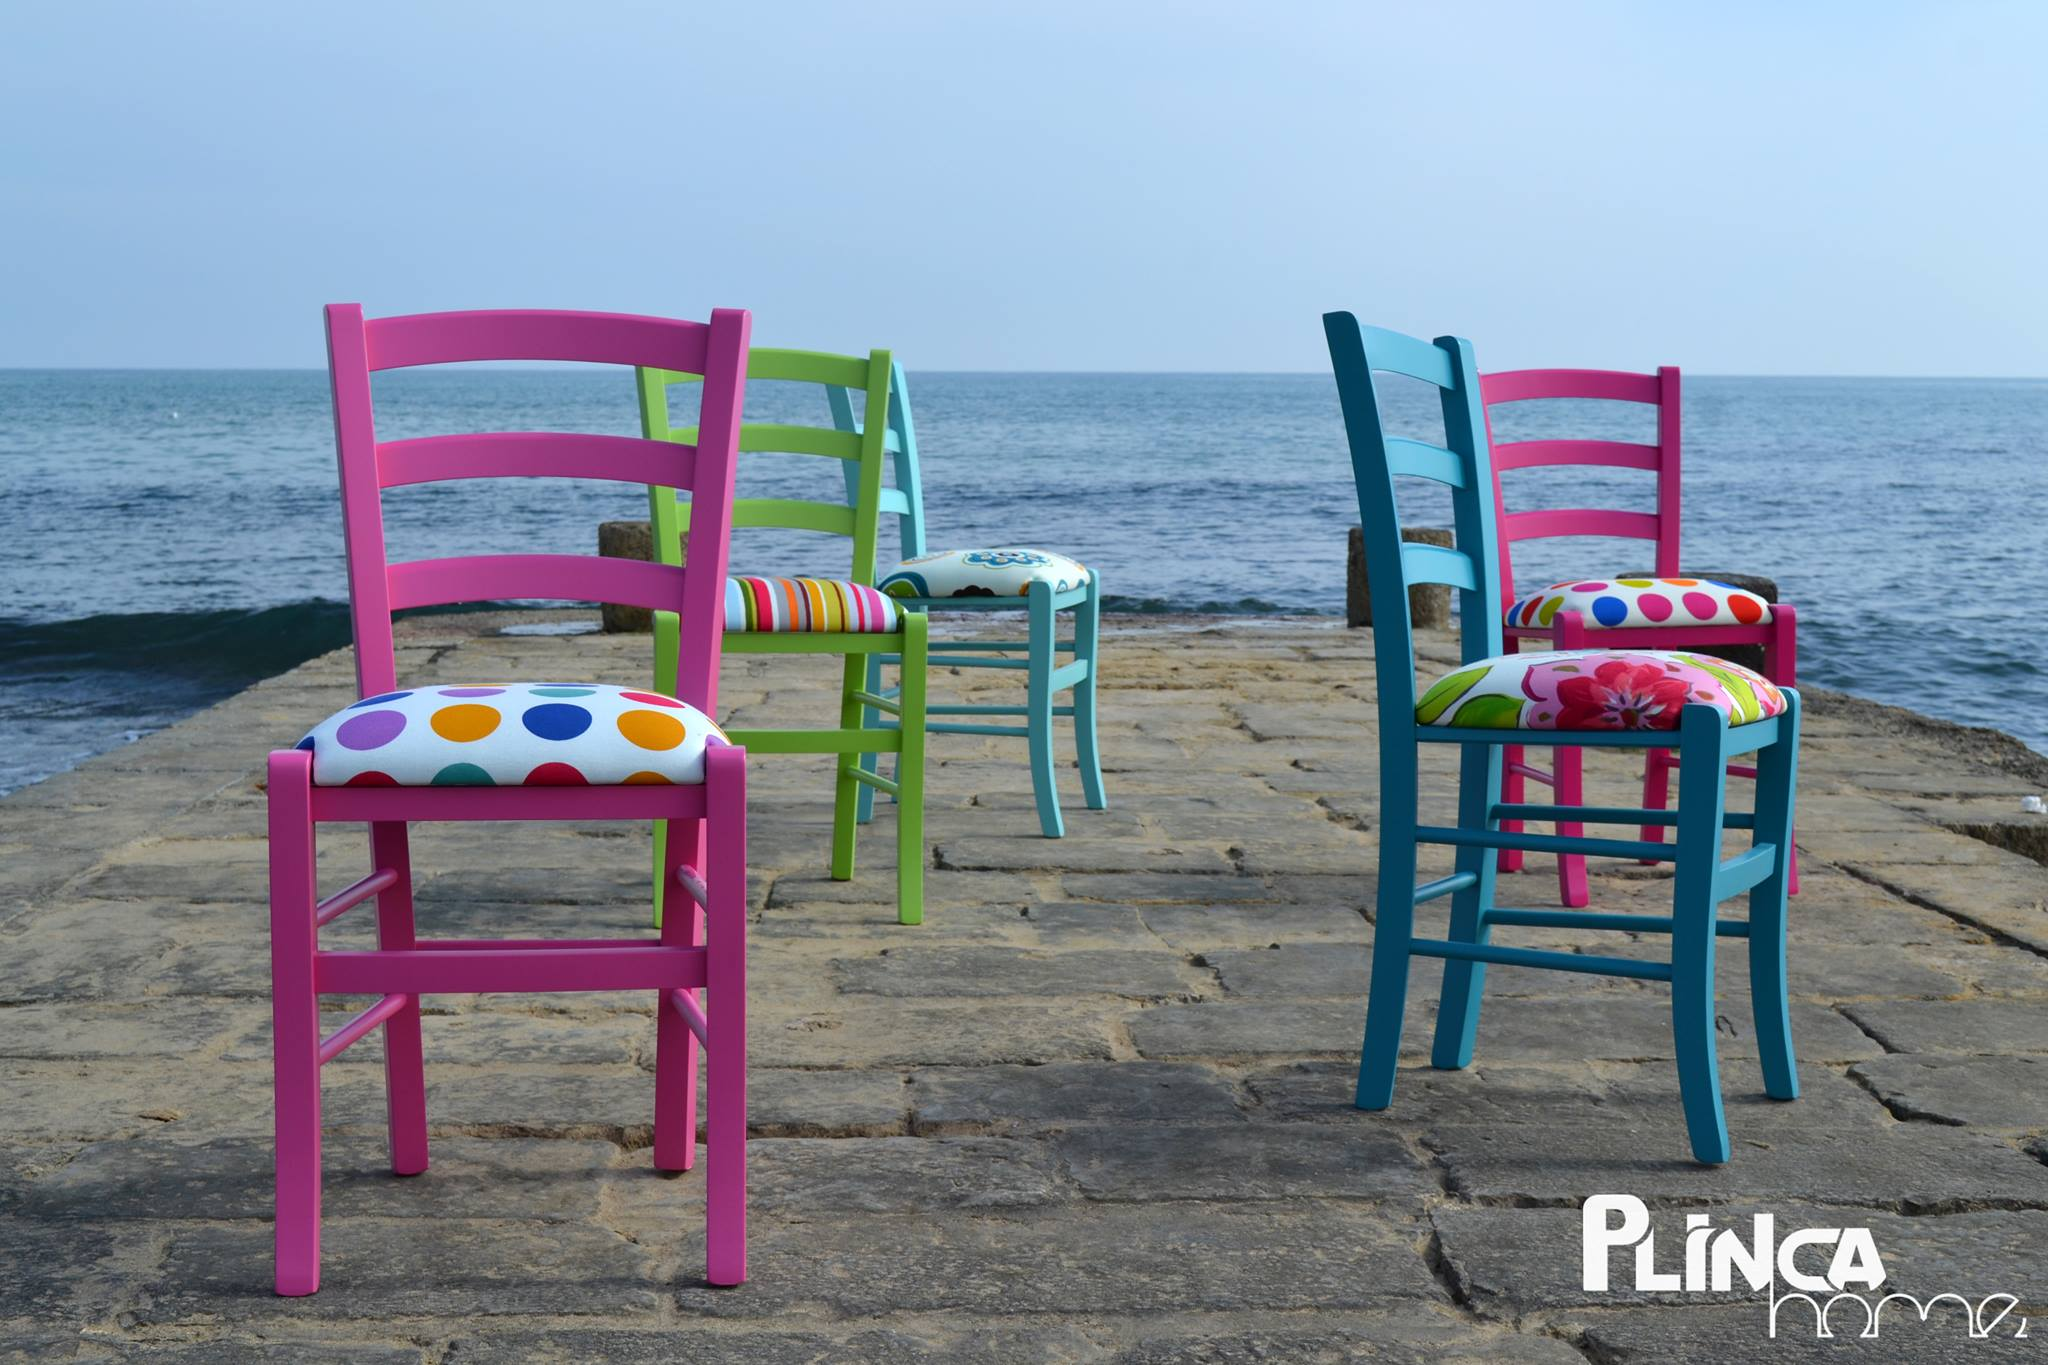 Plinca Home: Restyling e Recycling a tutto colore